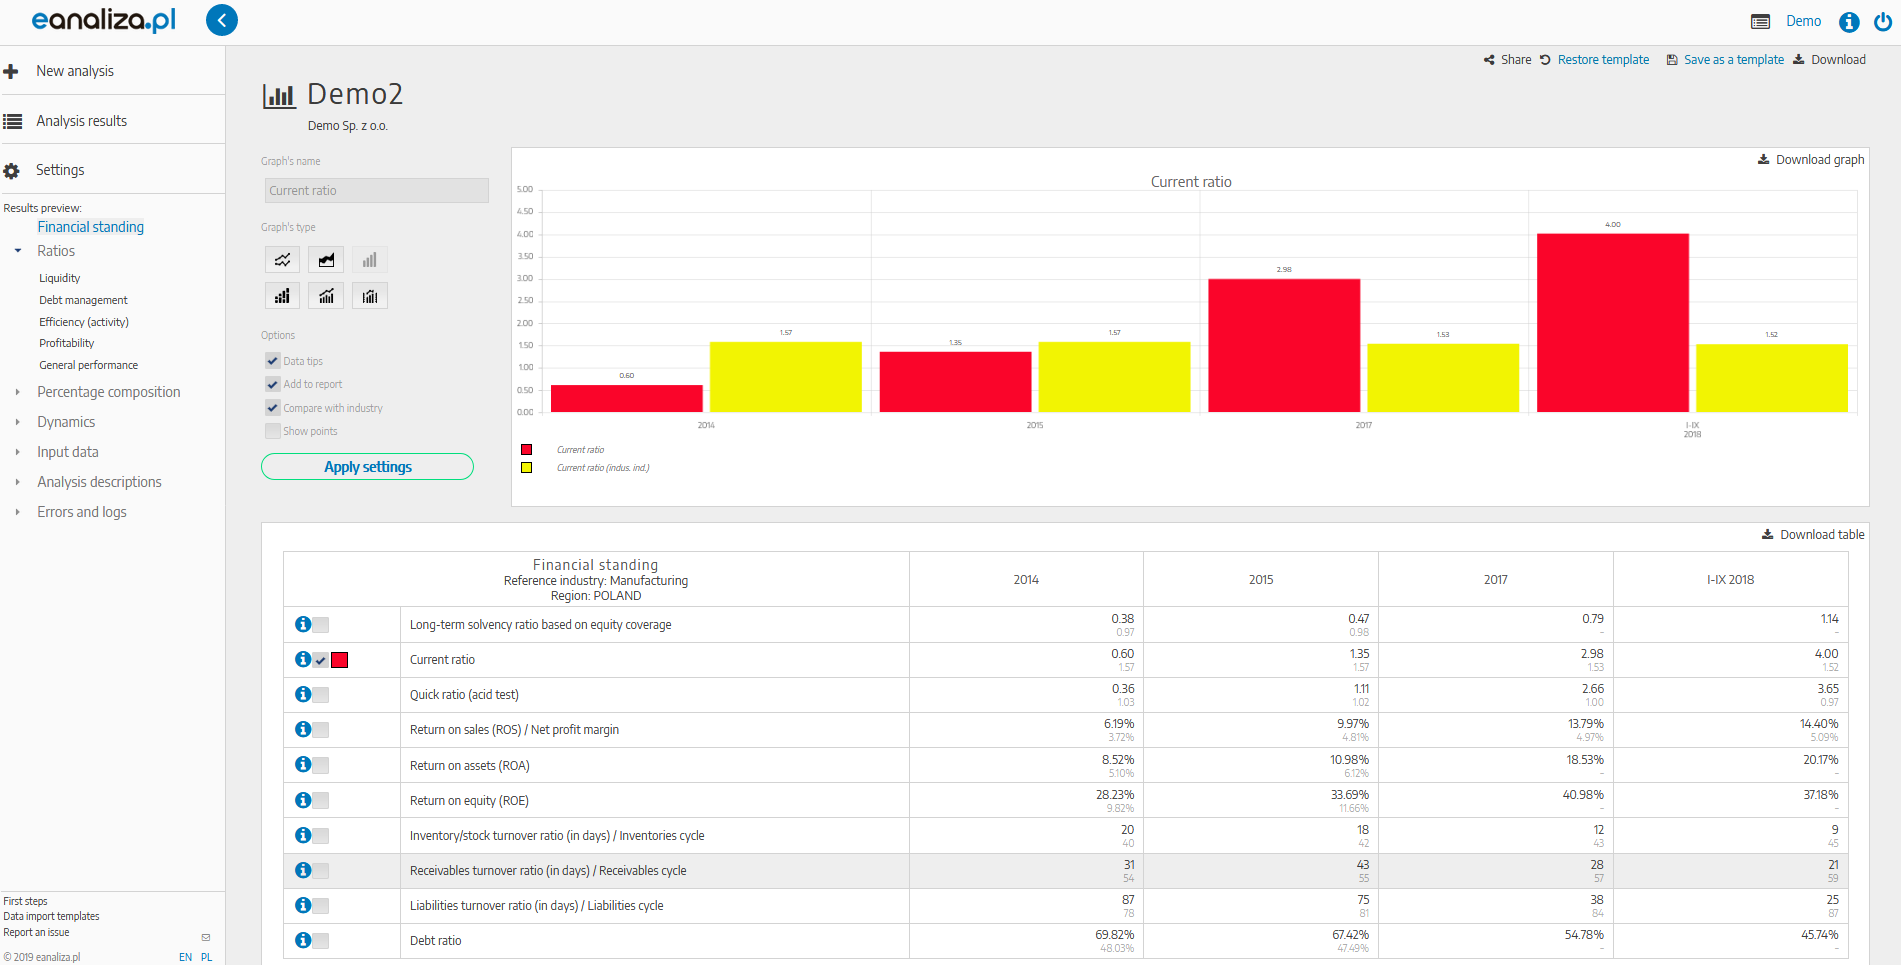 Example view comparing the industry indicators to proper company's ratios in eanaliza.pl system